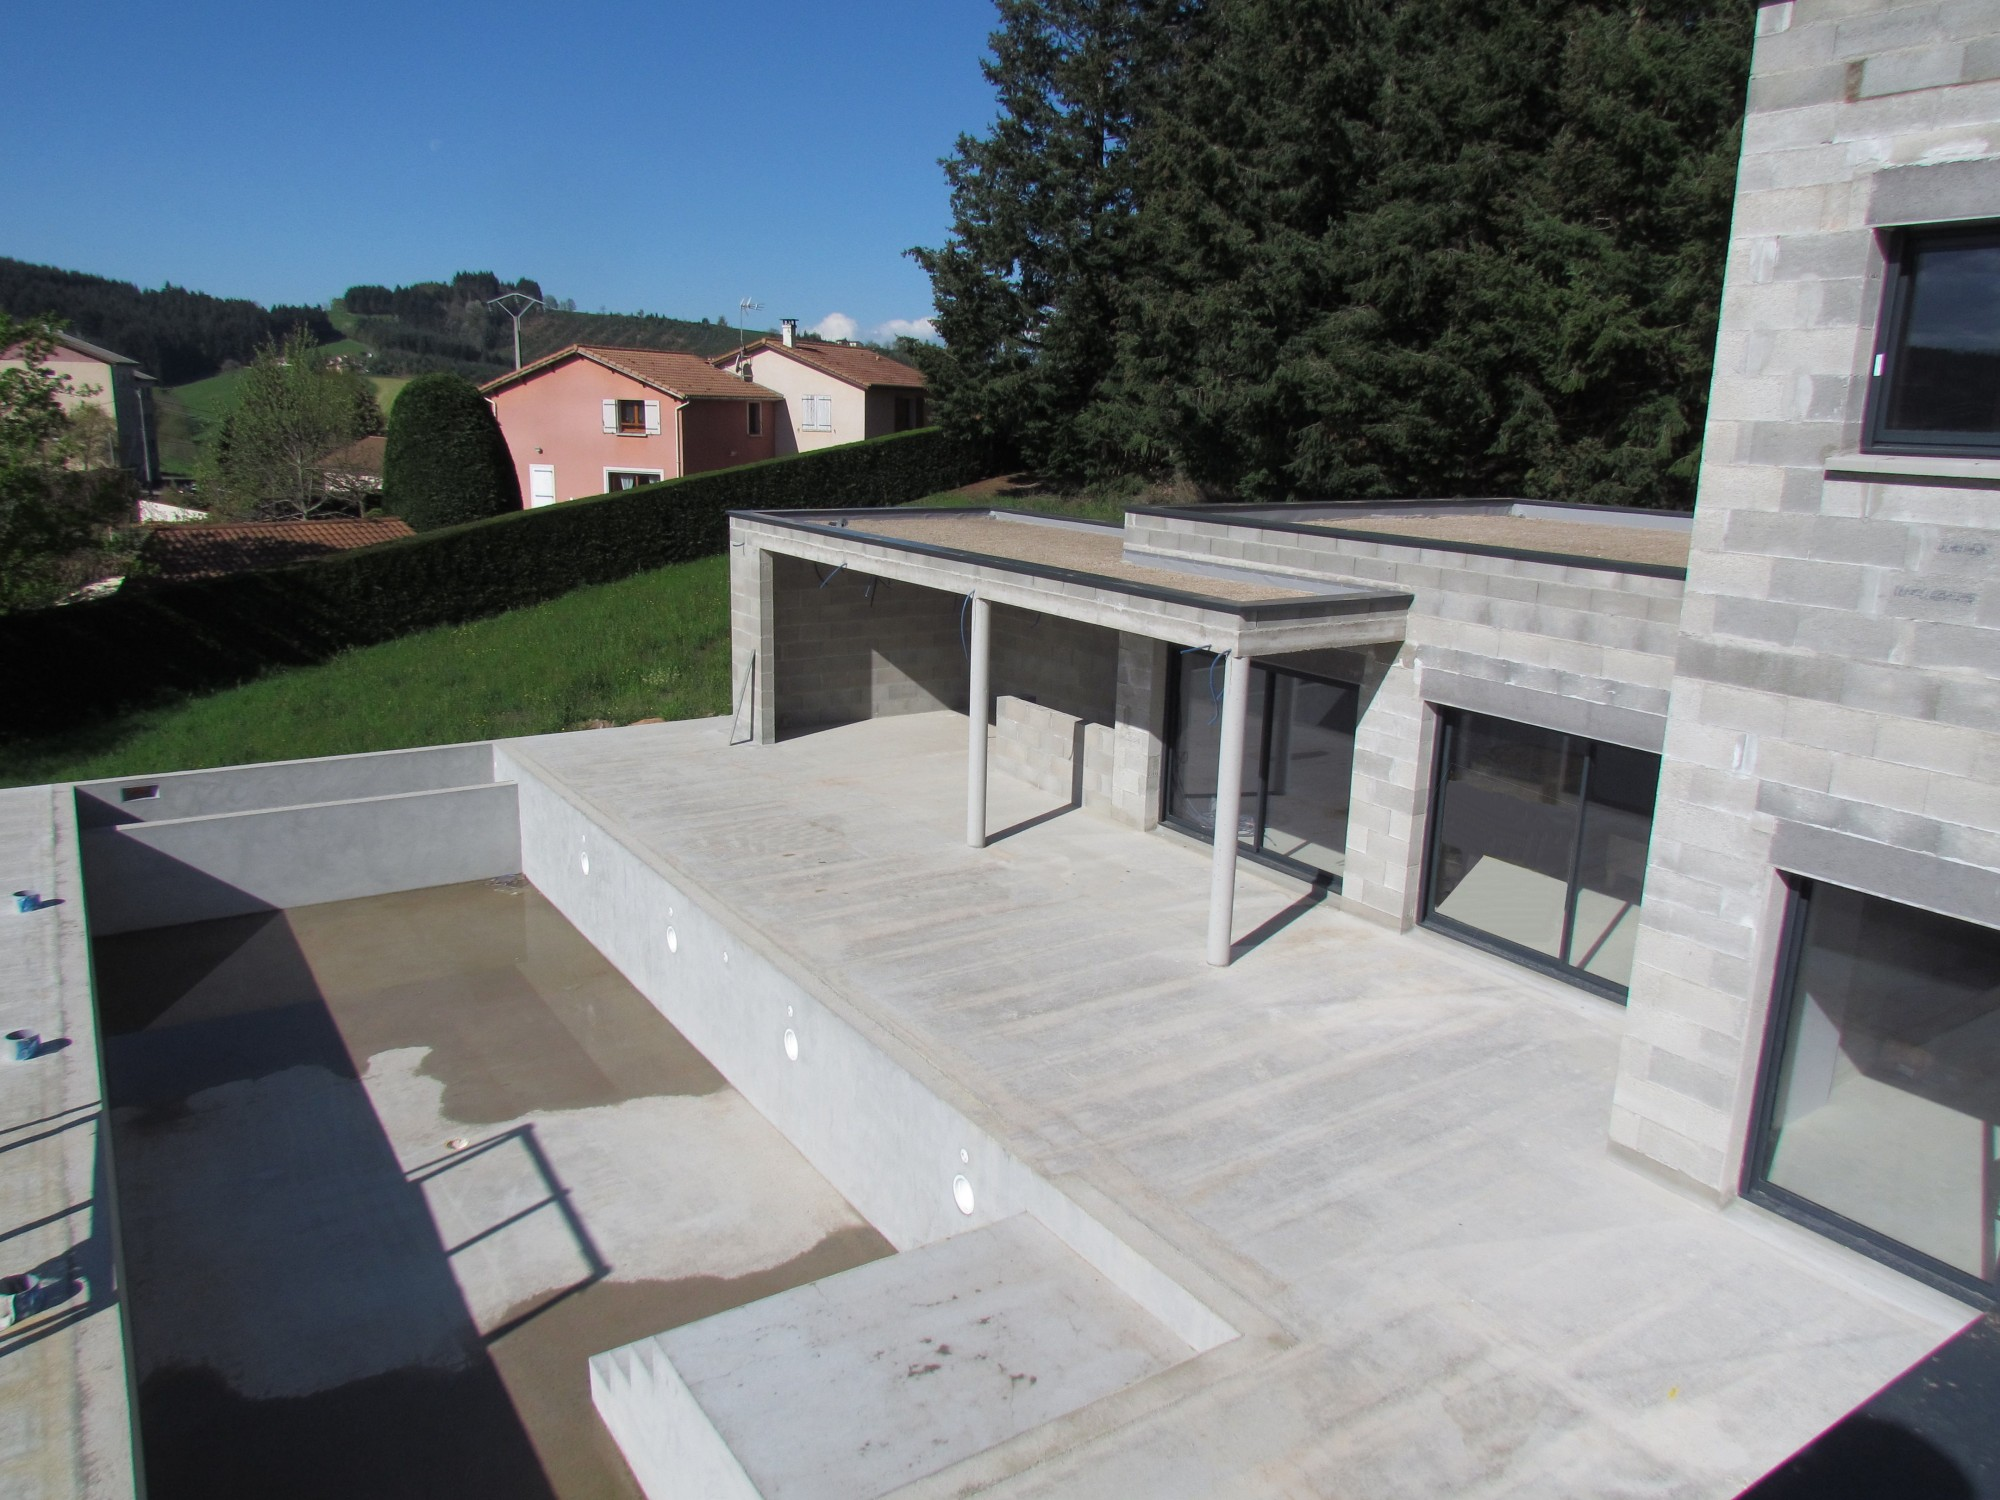 Toit plat v g talis pour cette belle maison contemporaine for Construction pool house piscine